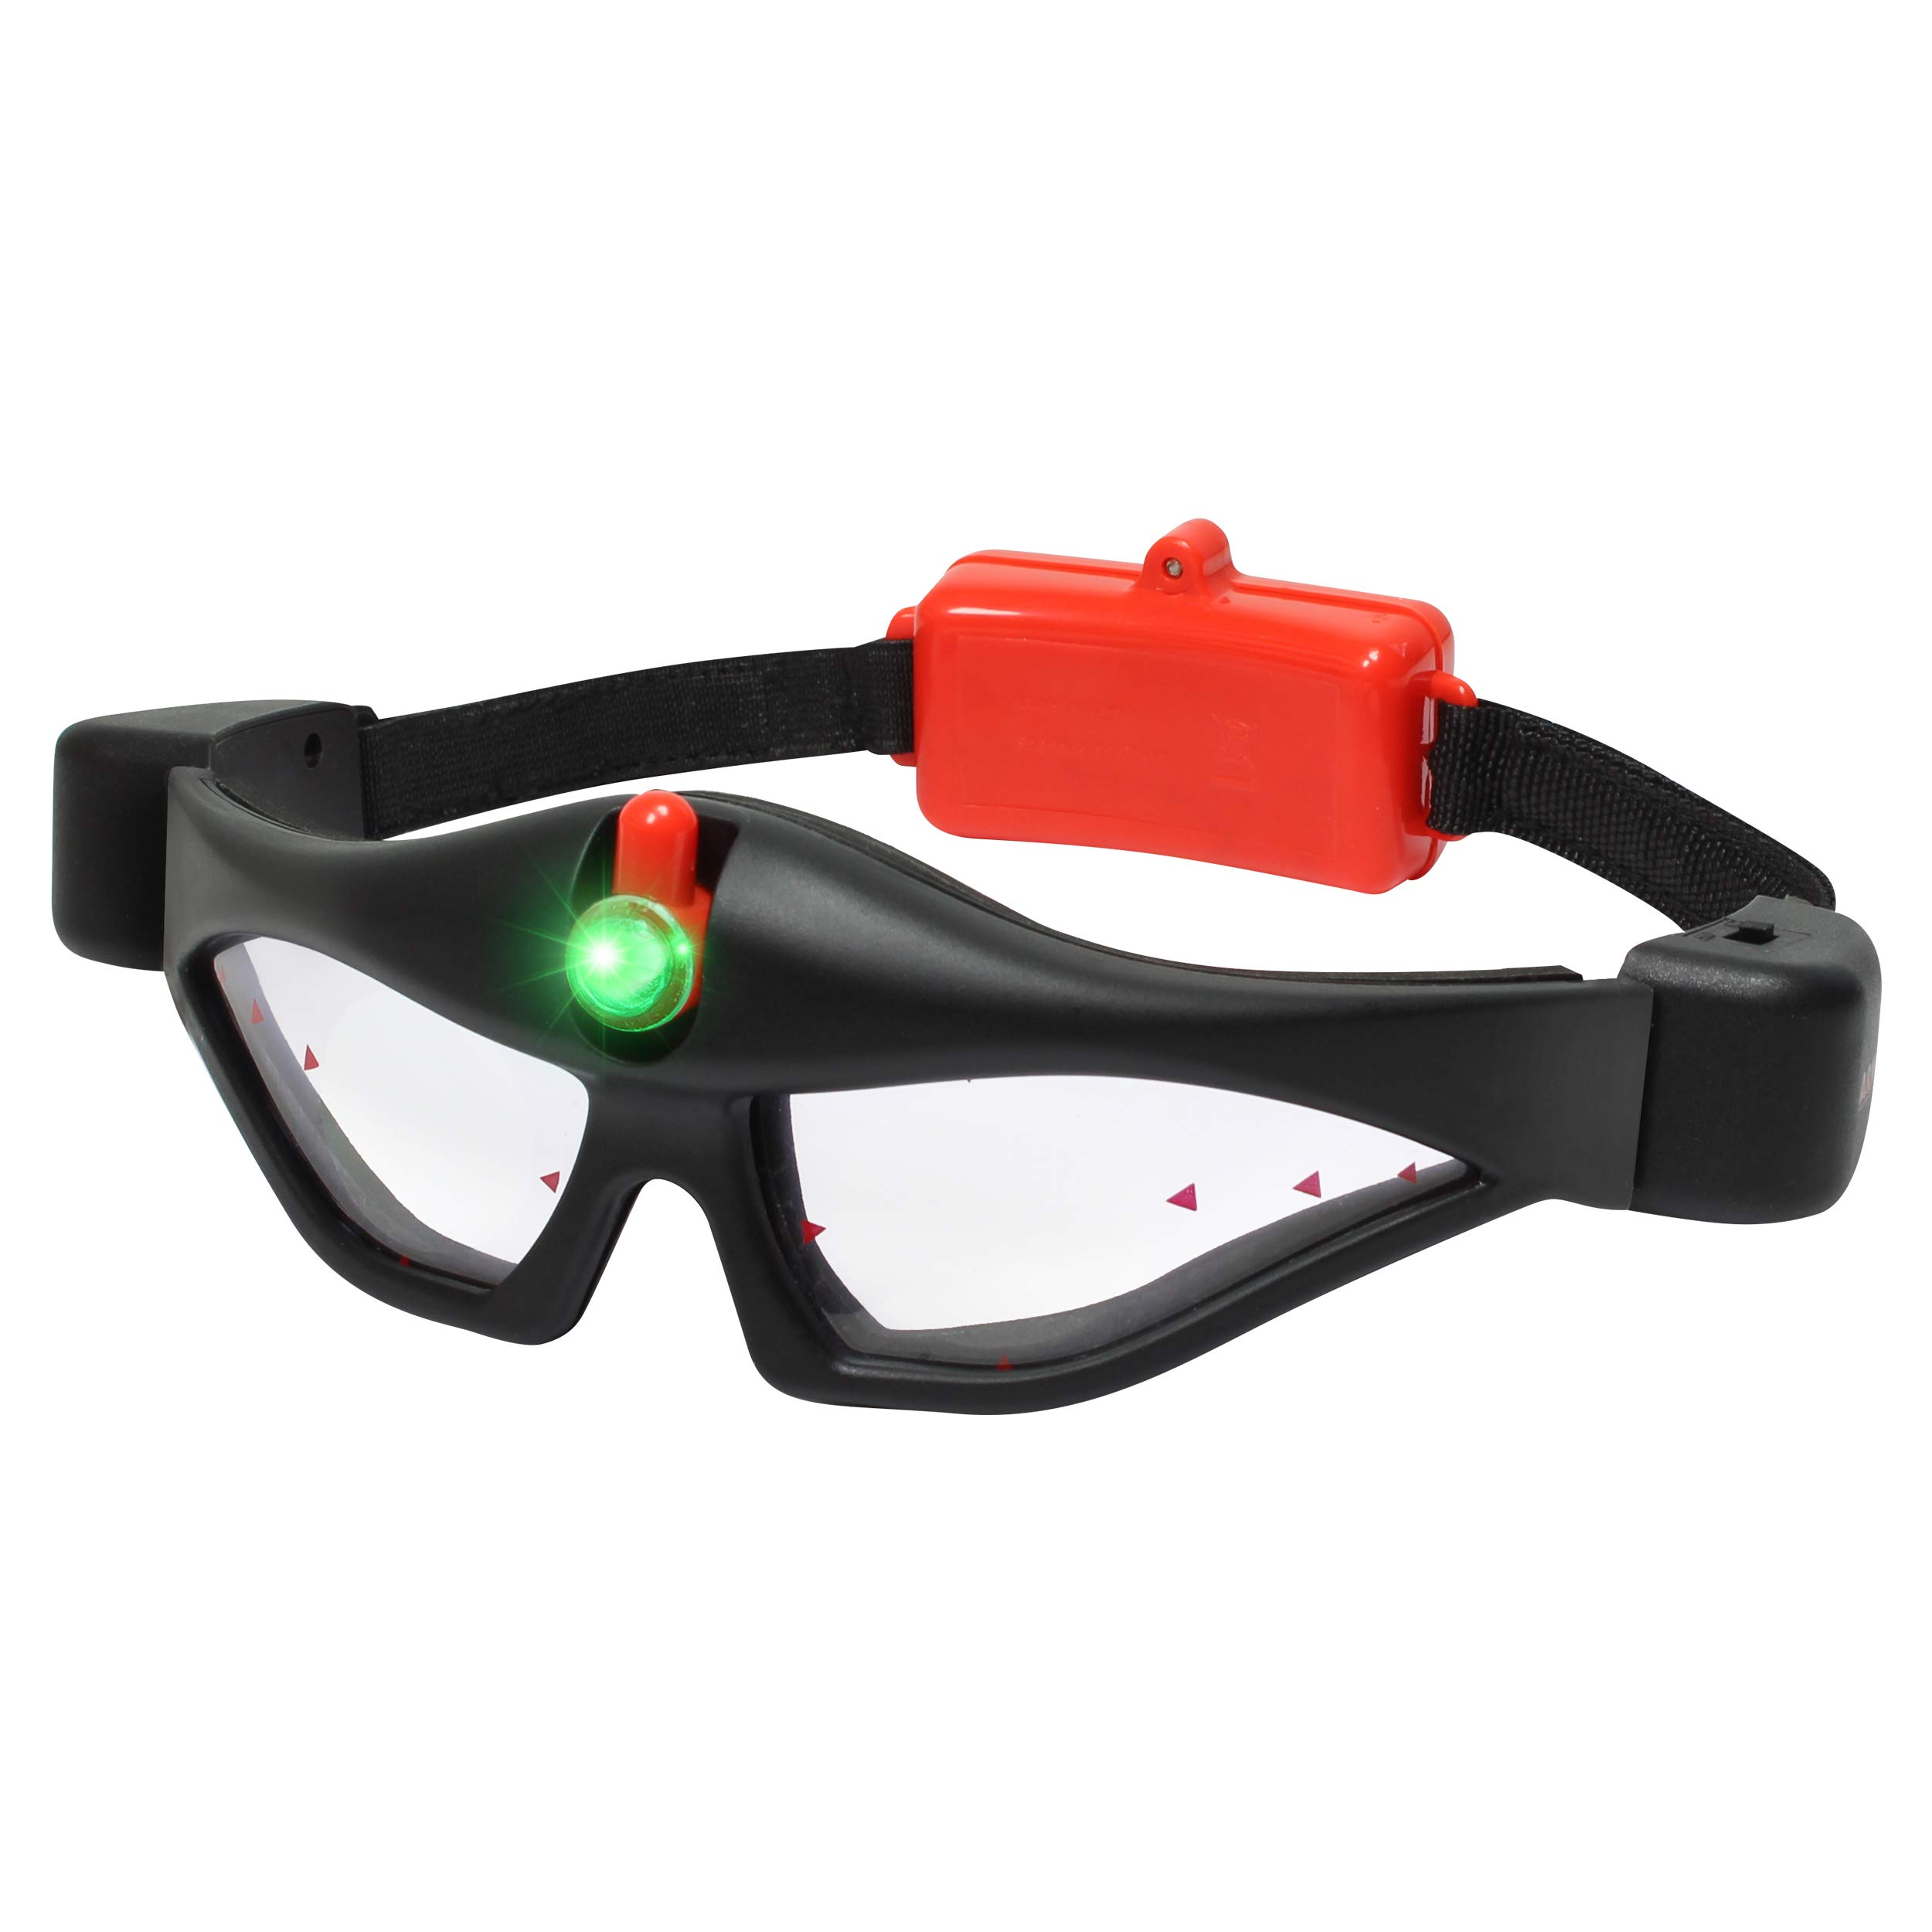 ArmoGear Kids Night Vision Goggles with Built-in LED Headlight by ArmoGear